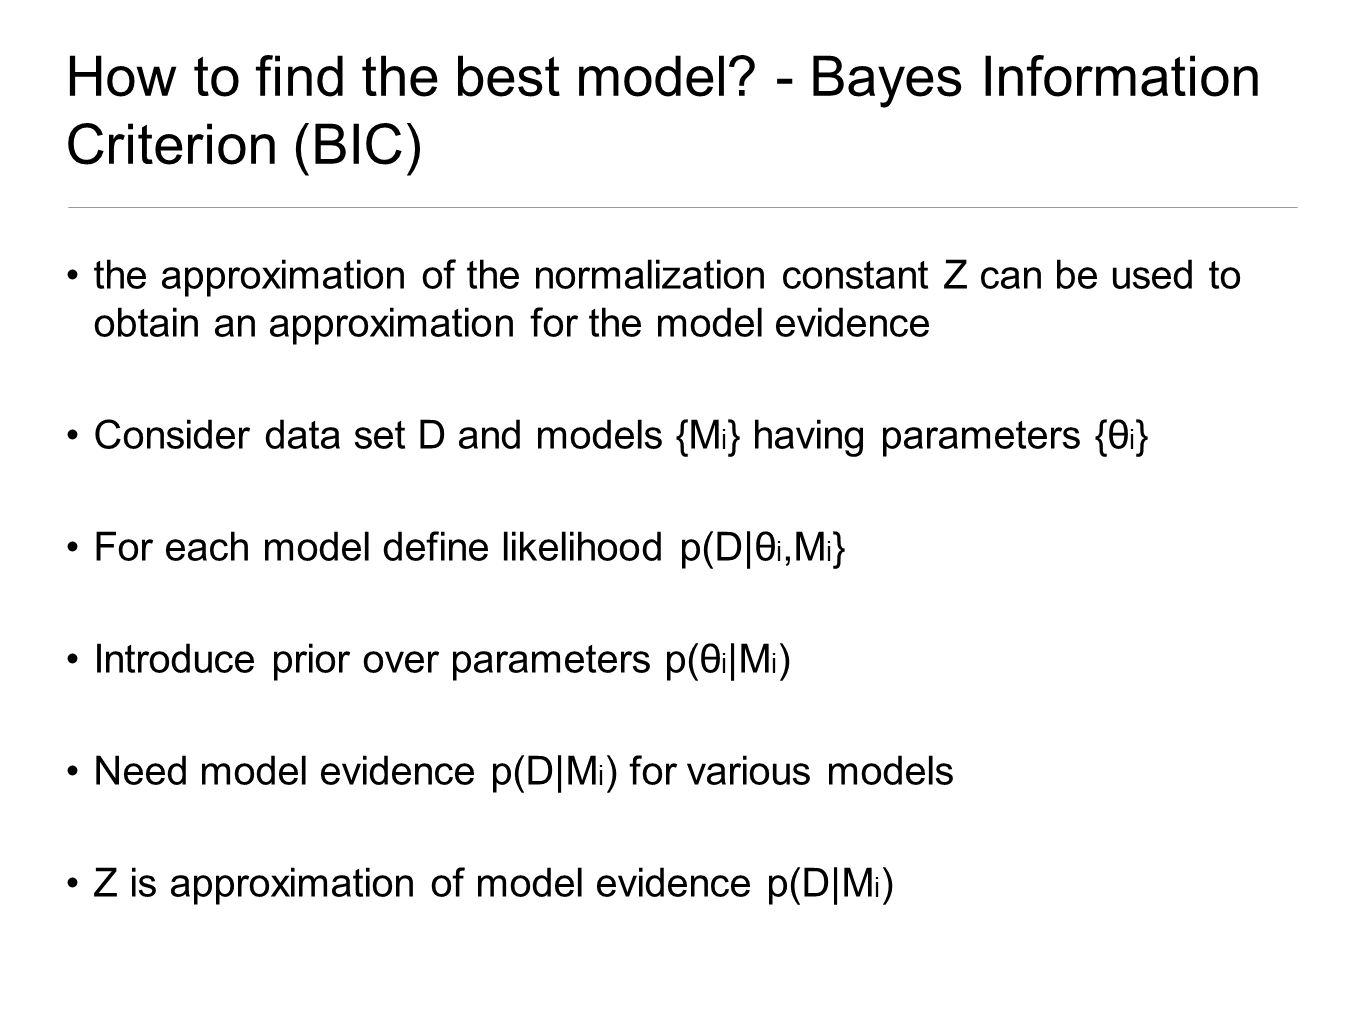 How to find the best model - Bayes Information Criterion (BIC)